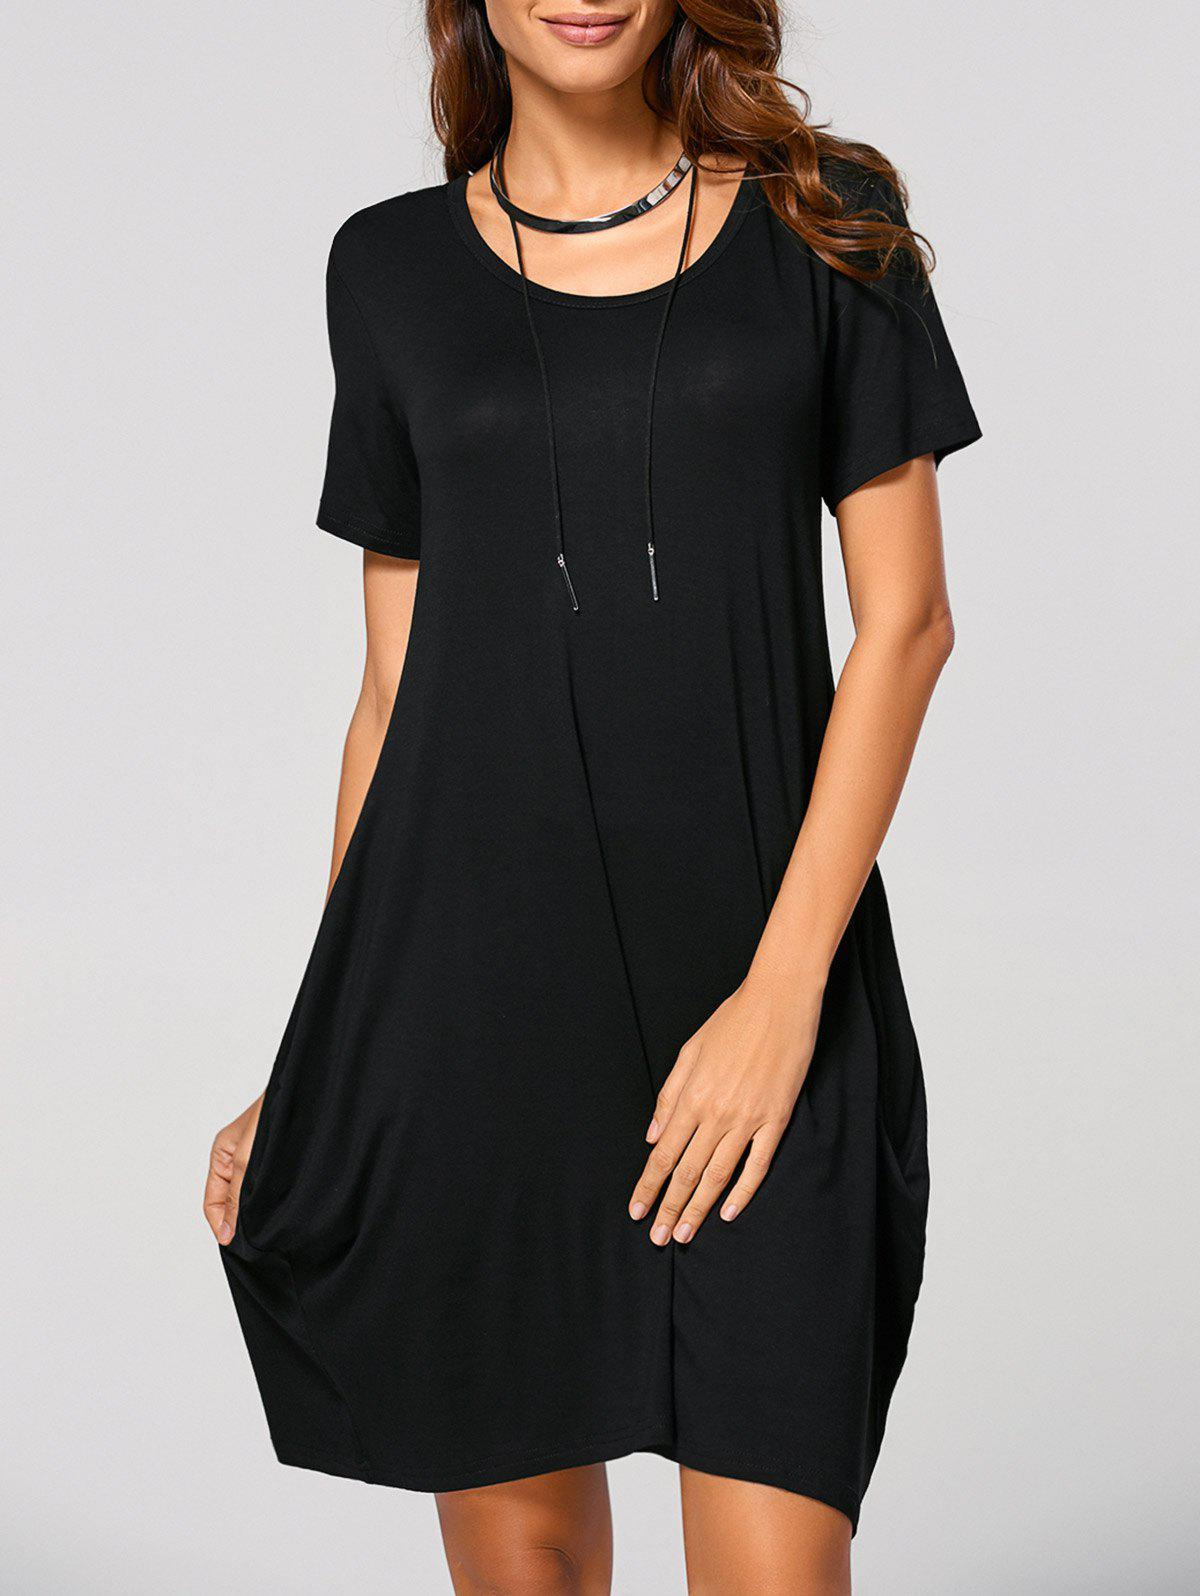 Short Sleeve Ruched Dress - BLACK L